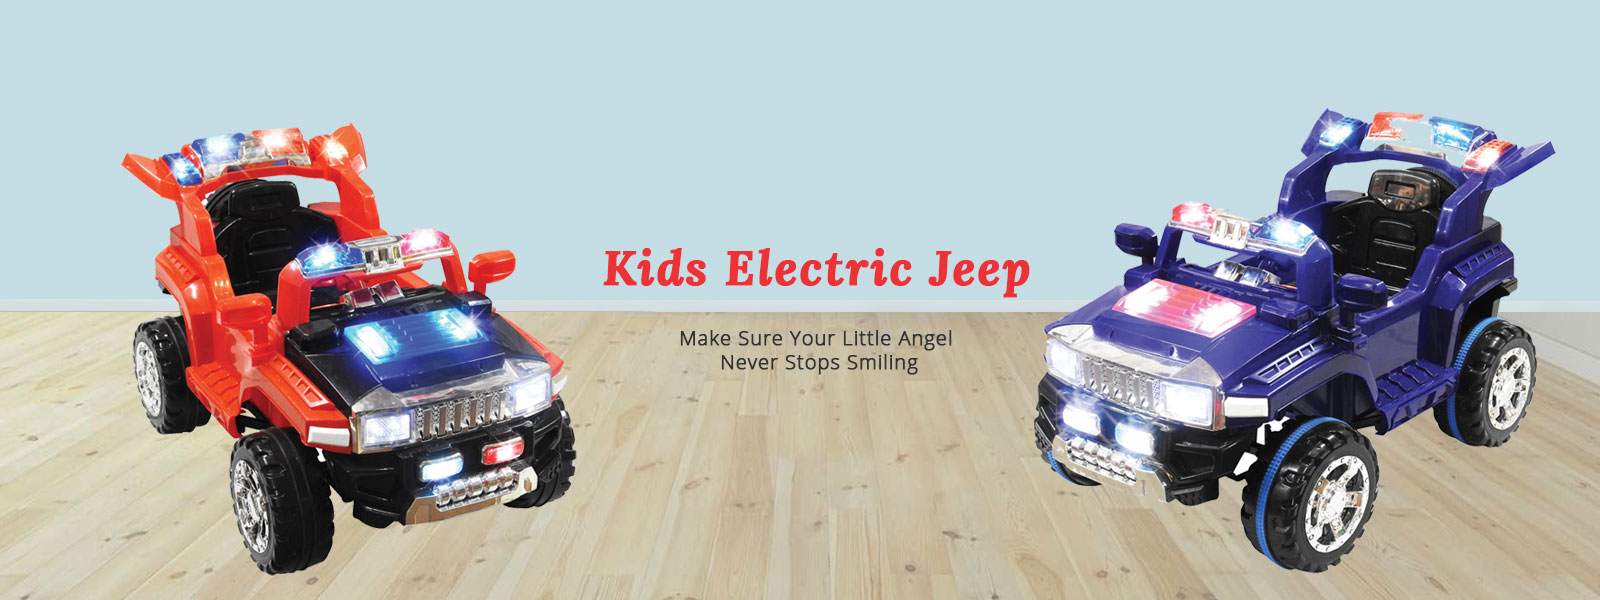 Kids Electric Jeep Manufacturers in Meerut